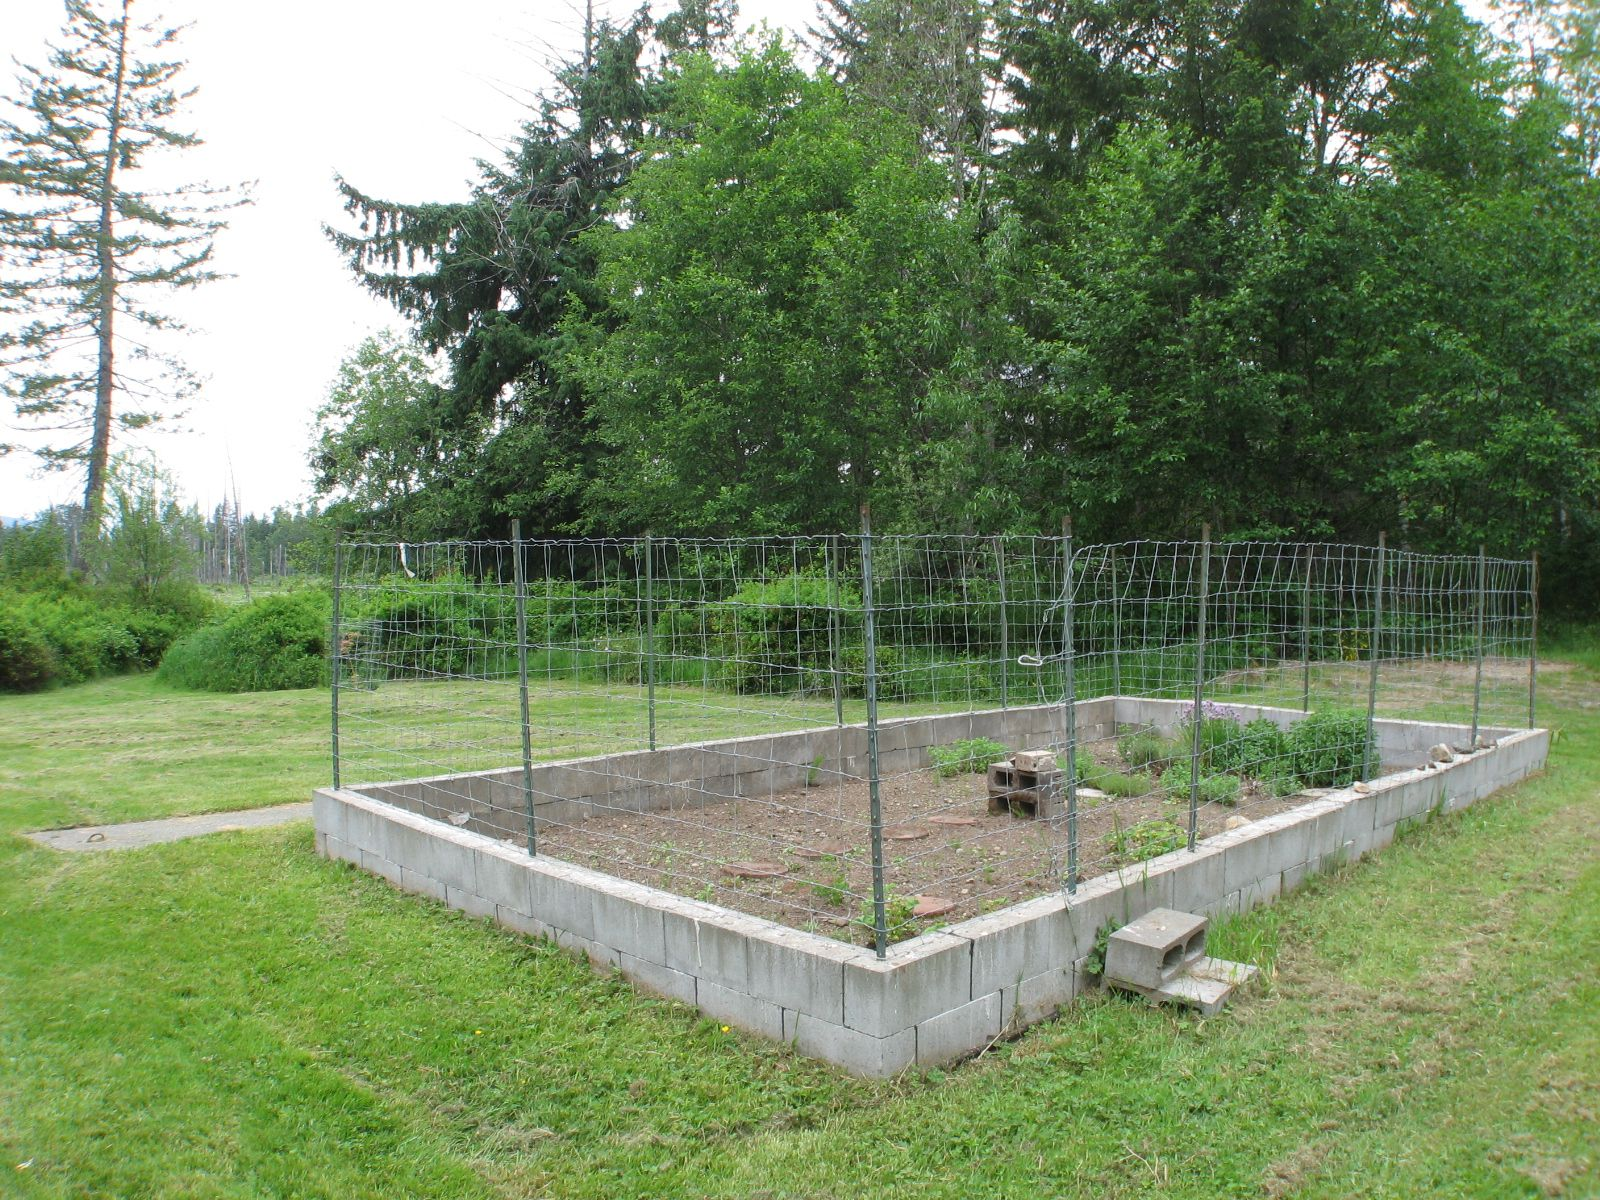 Vegetable garden deer fence ideas - Deer Proof Vegetable Garden Ft Deer Proof Fence Surrounds The Fertile Soil